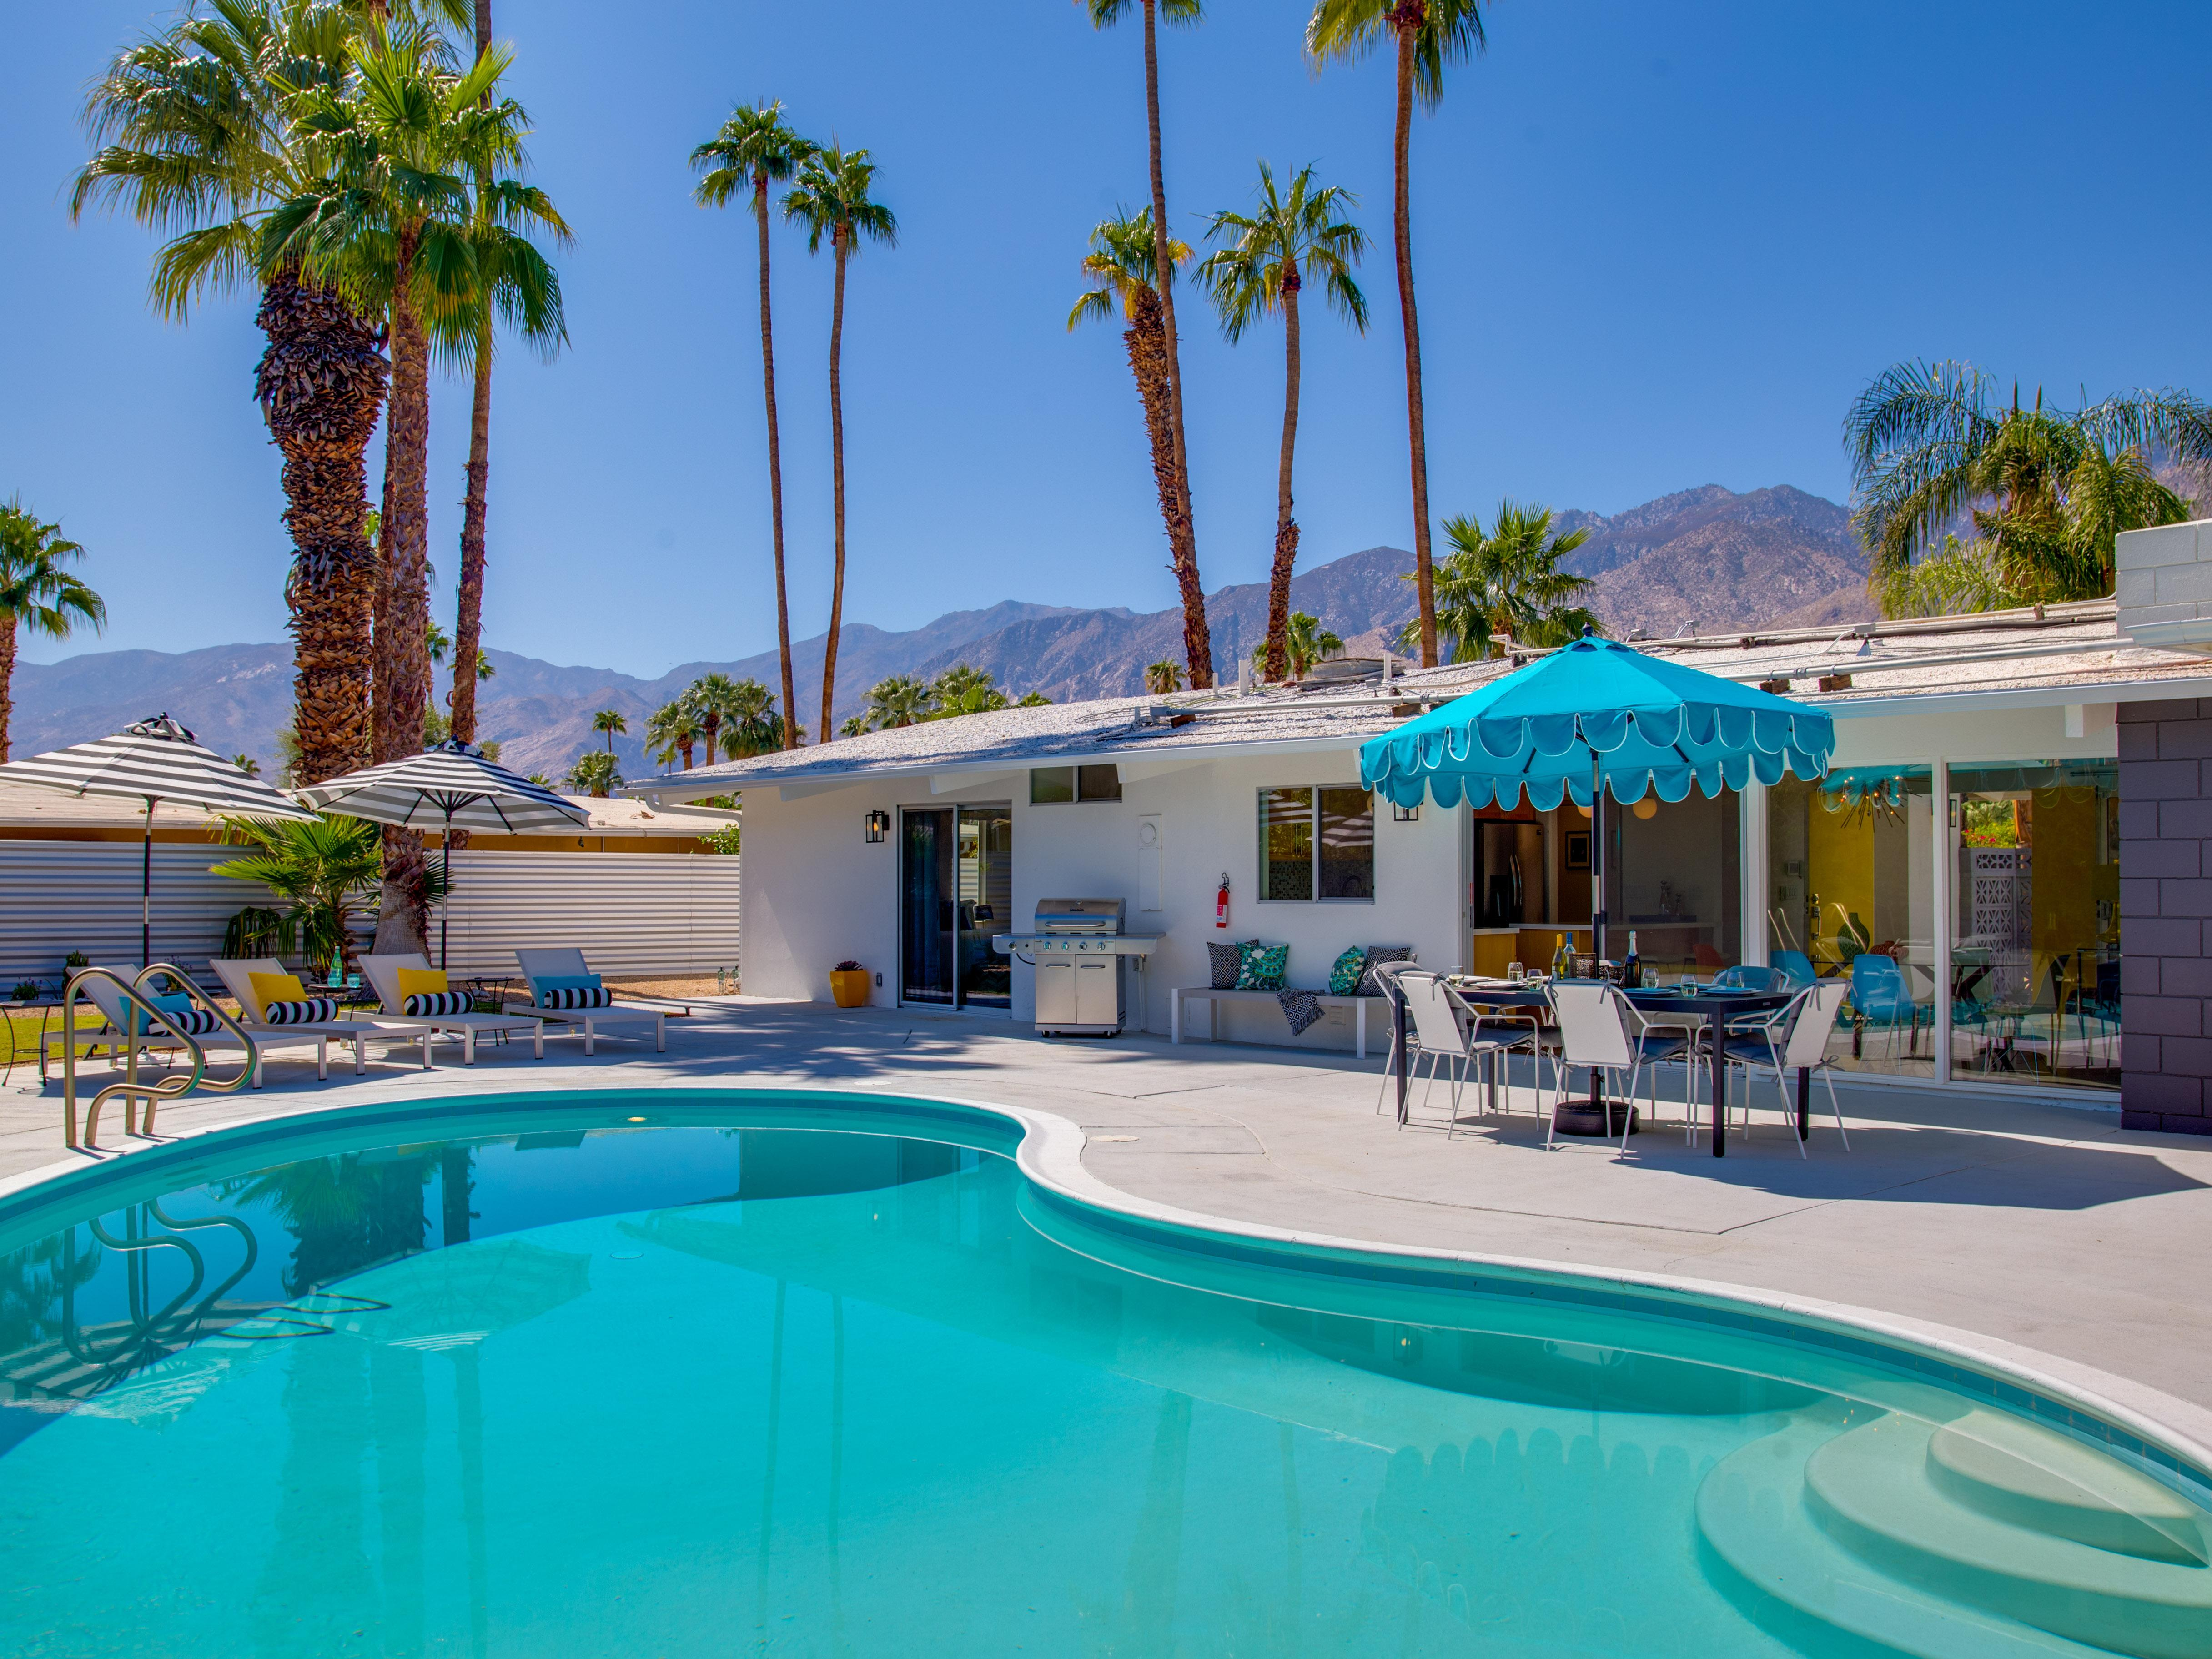 The Jagger House - A Palm Springs Pool Home